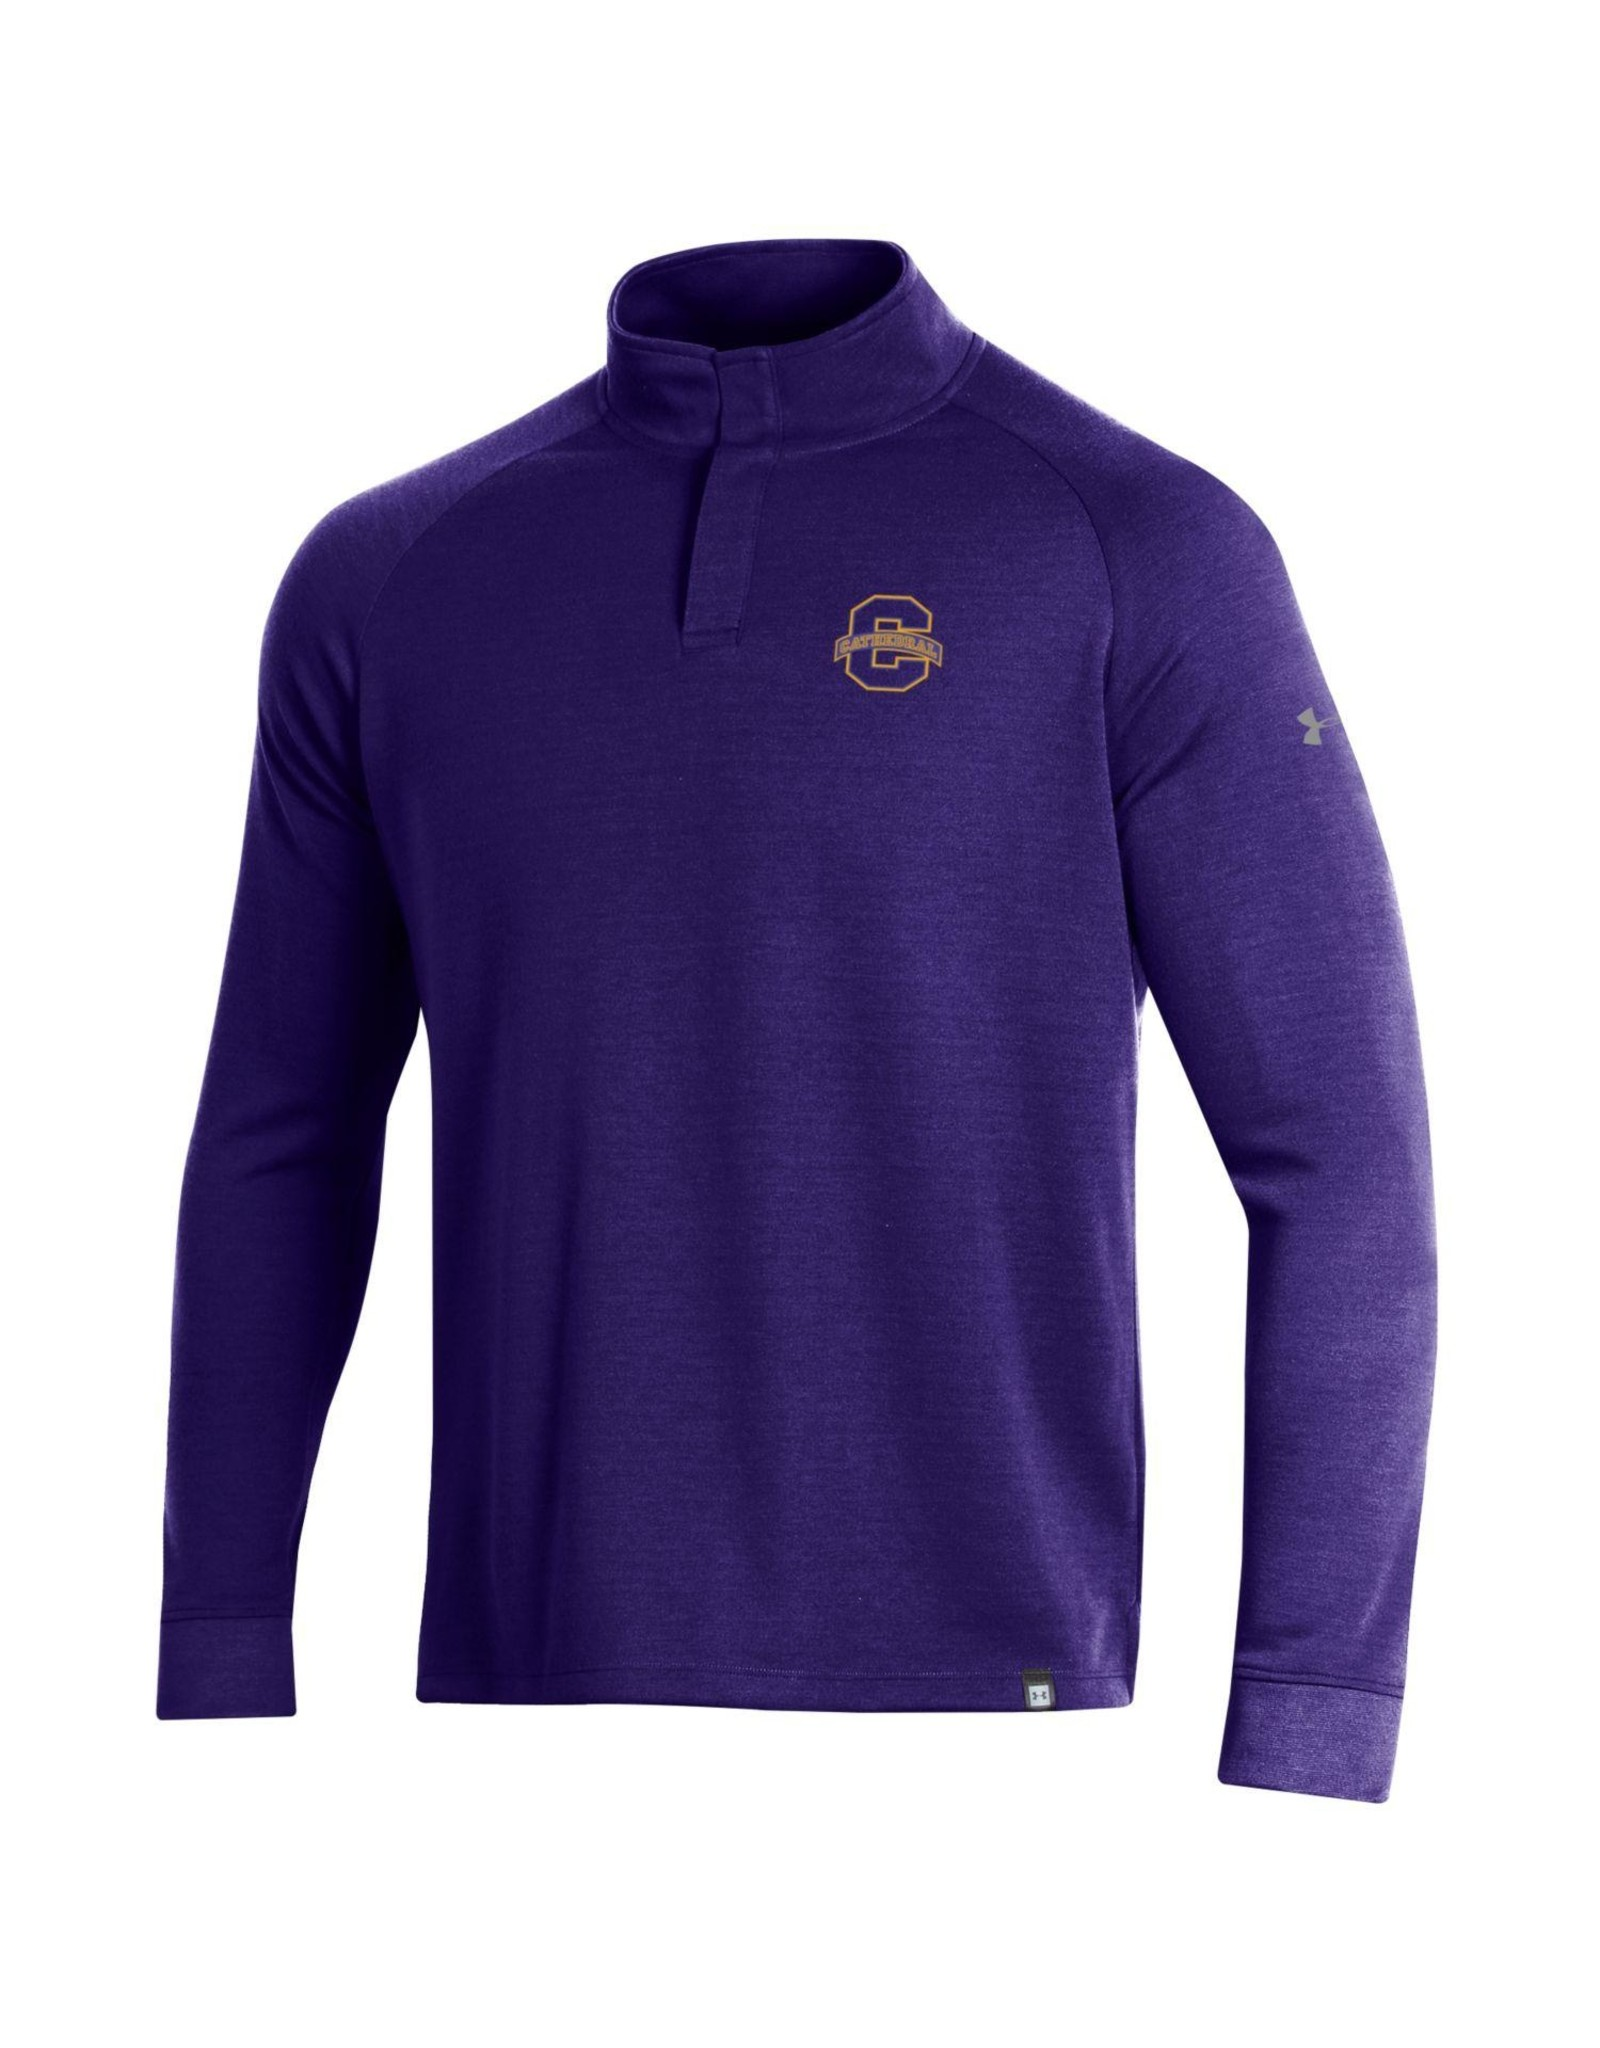 1/4 SNAP MENS LONG SLEEVE